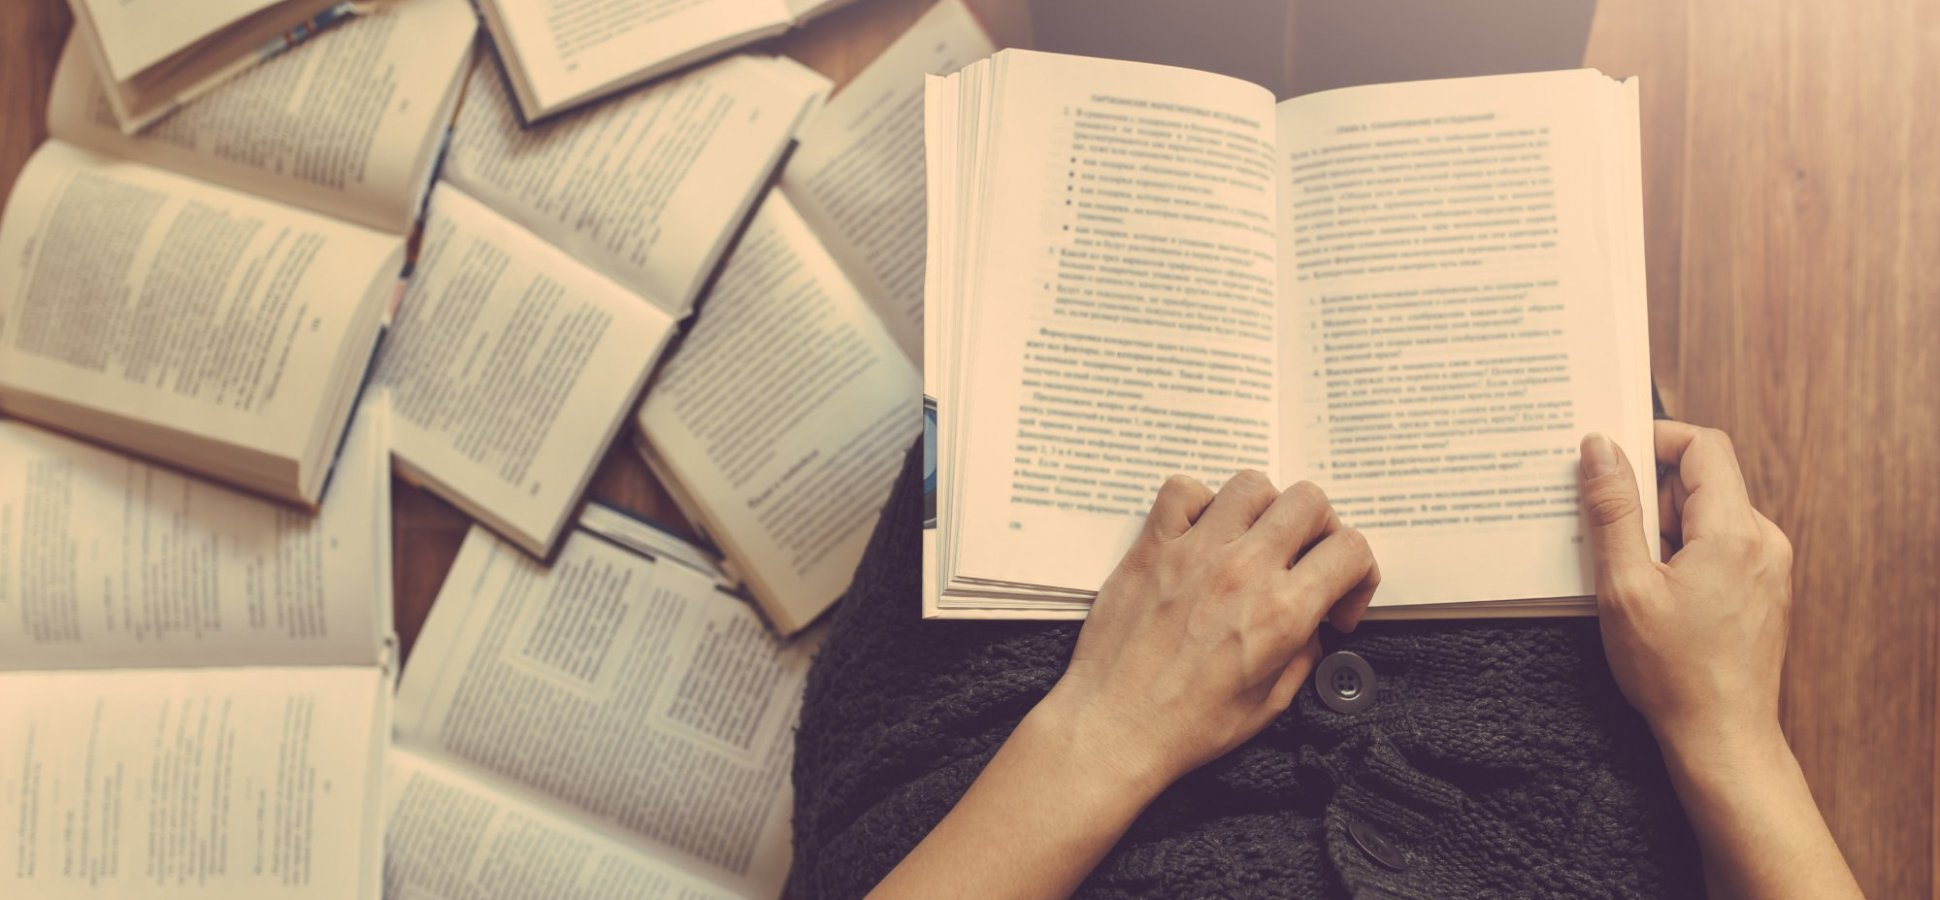 Want Your Marketing to be Extraordinary? Read These 4 Books